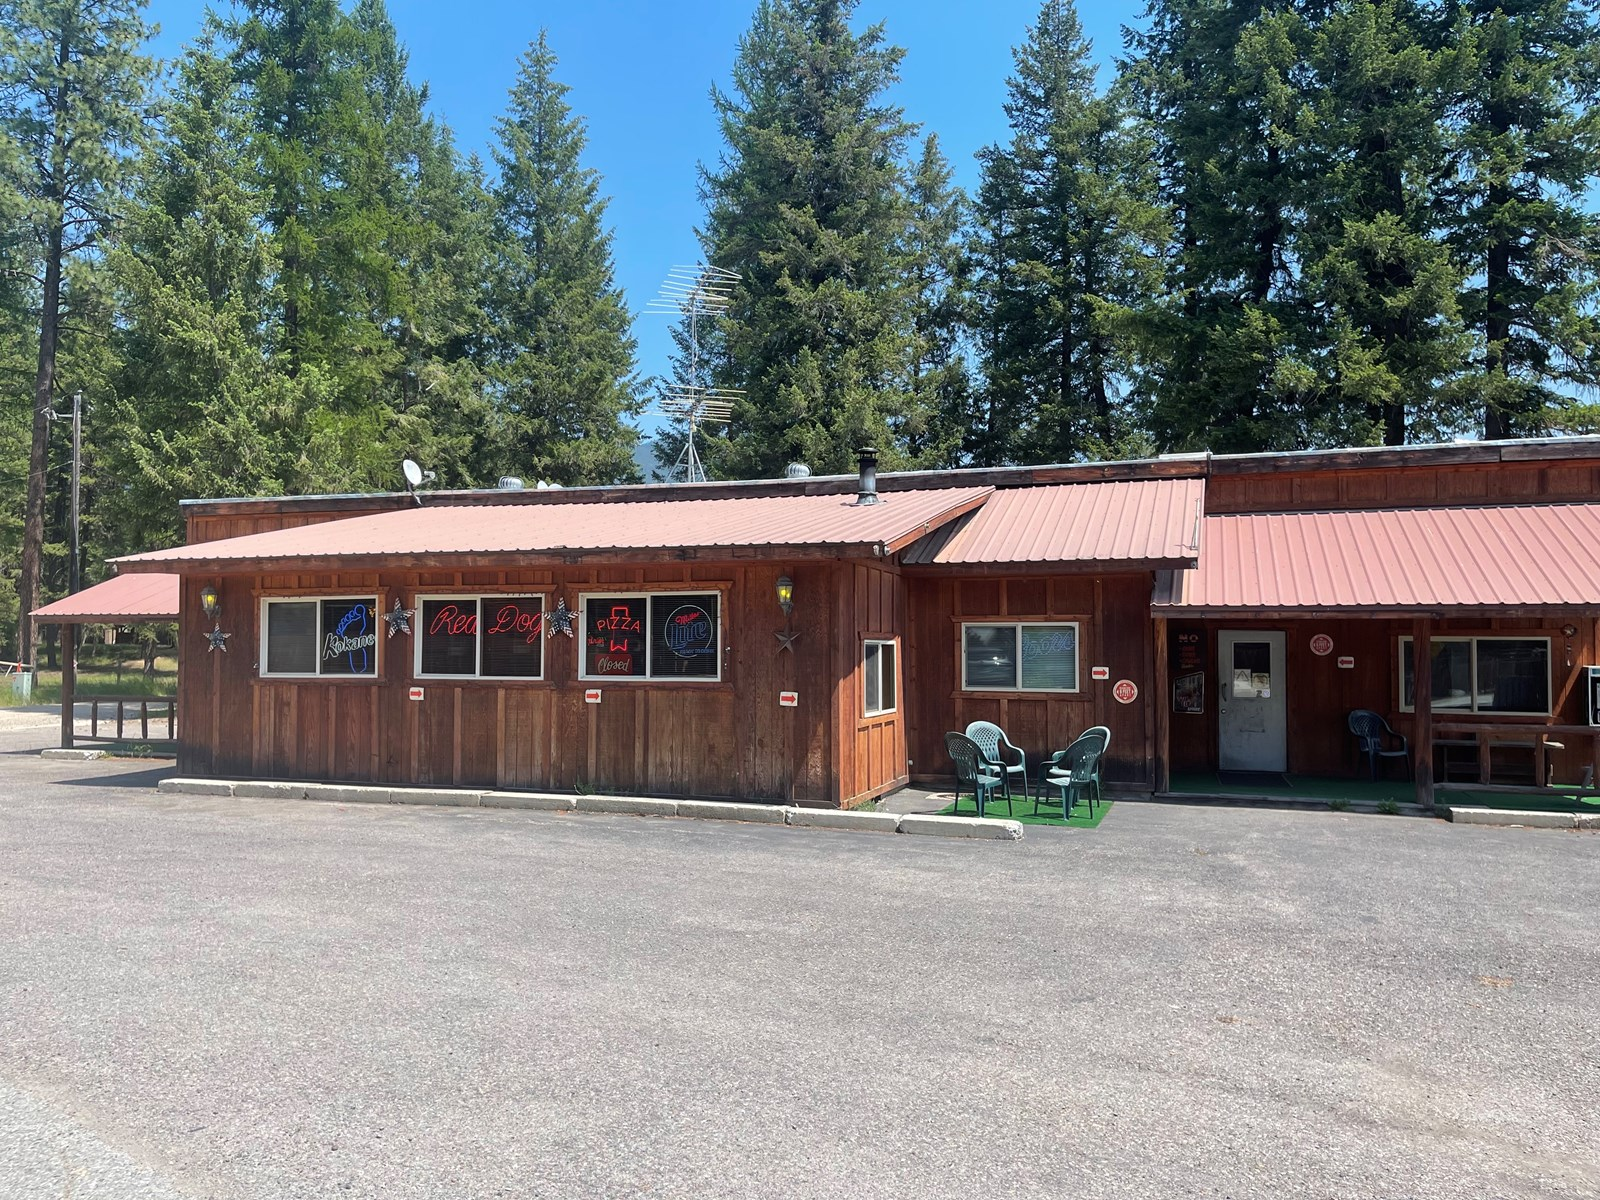 Bar and Restaurant for Sale in Montana